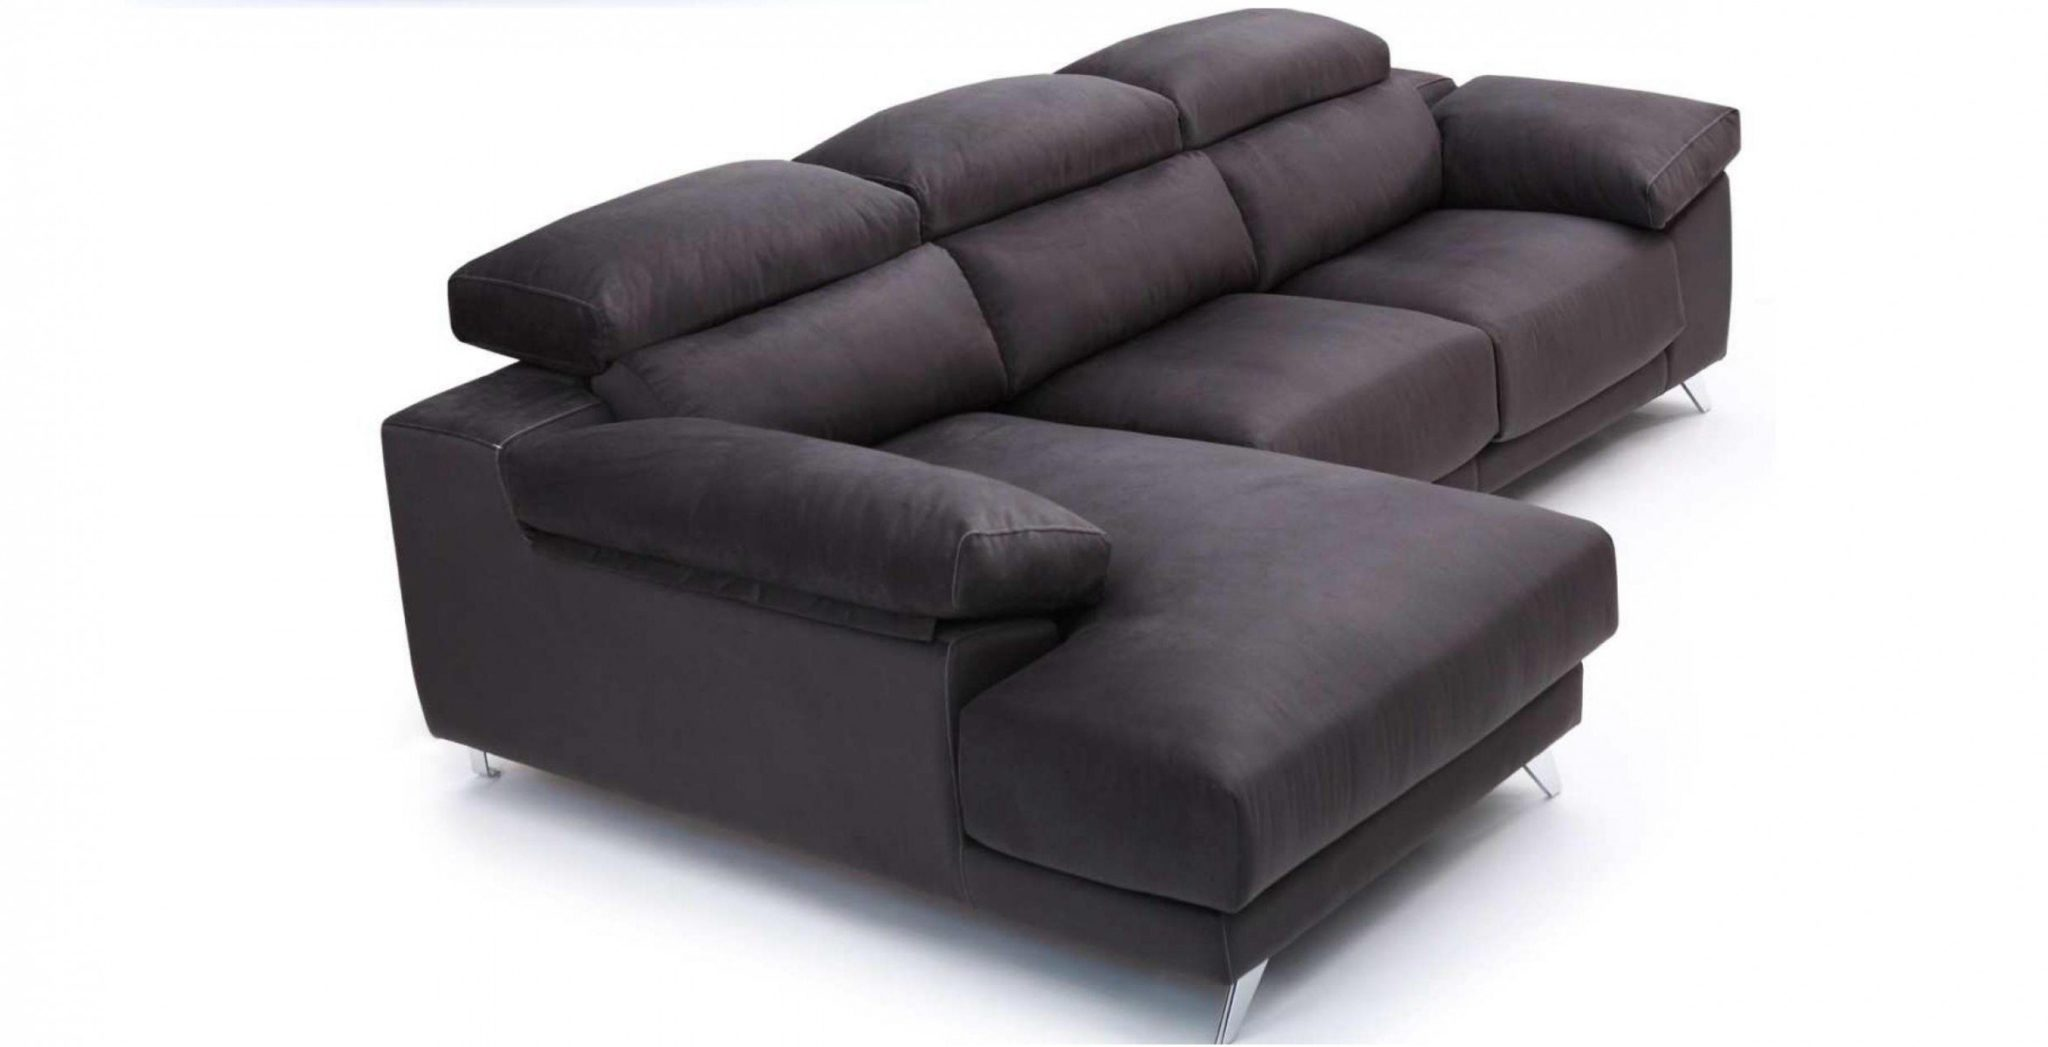 Chaise Longue Extraible Y Reclinable on chaise recliner chair, chaise furniture, chaise sofa sleeper,